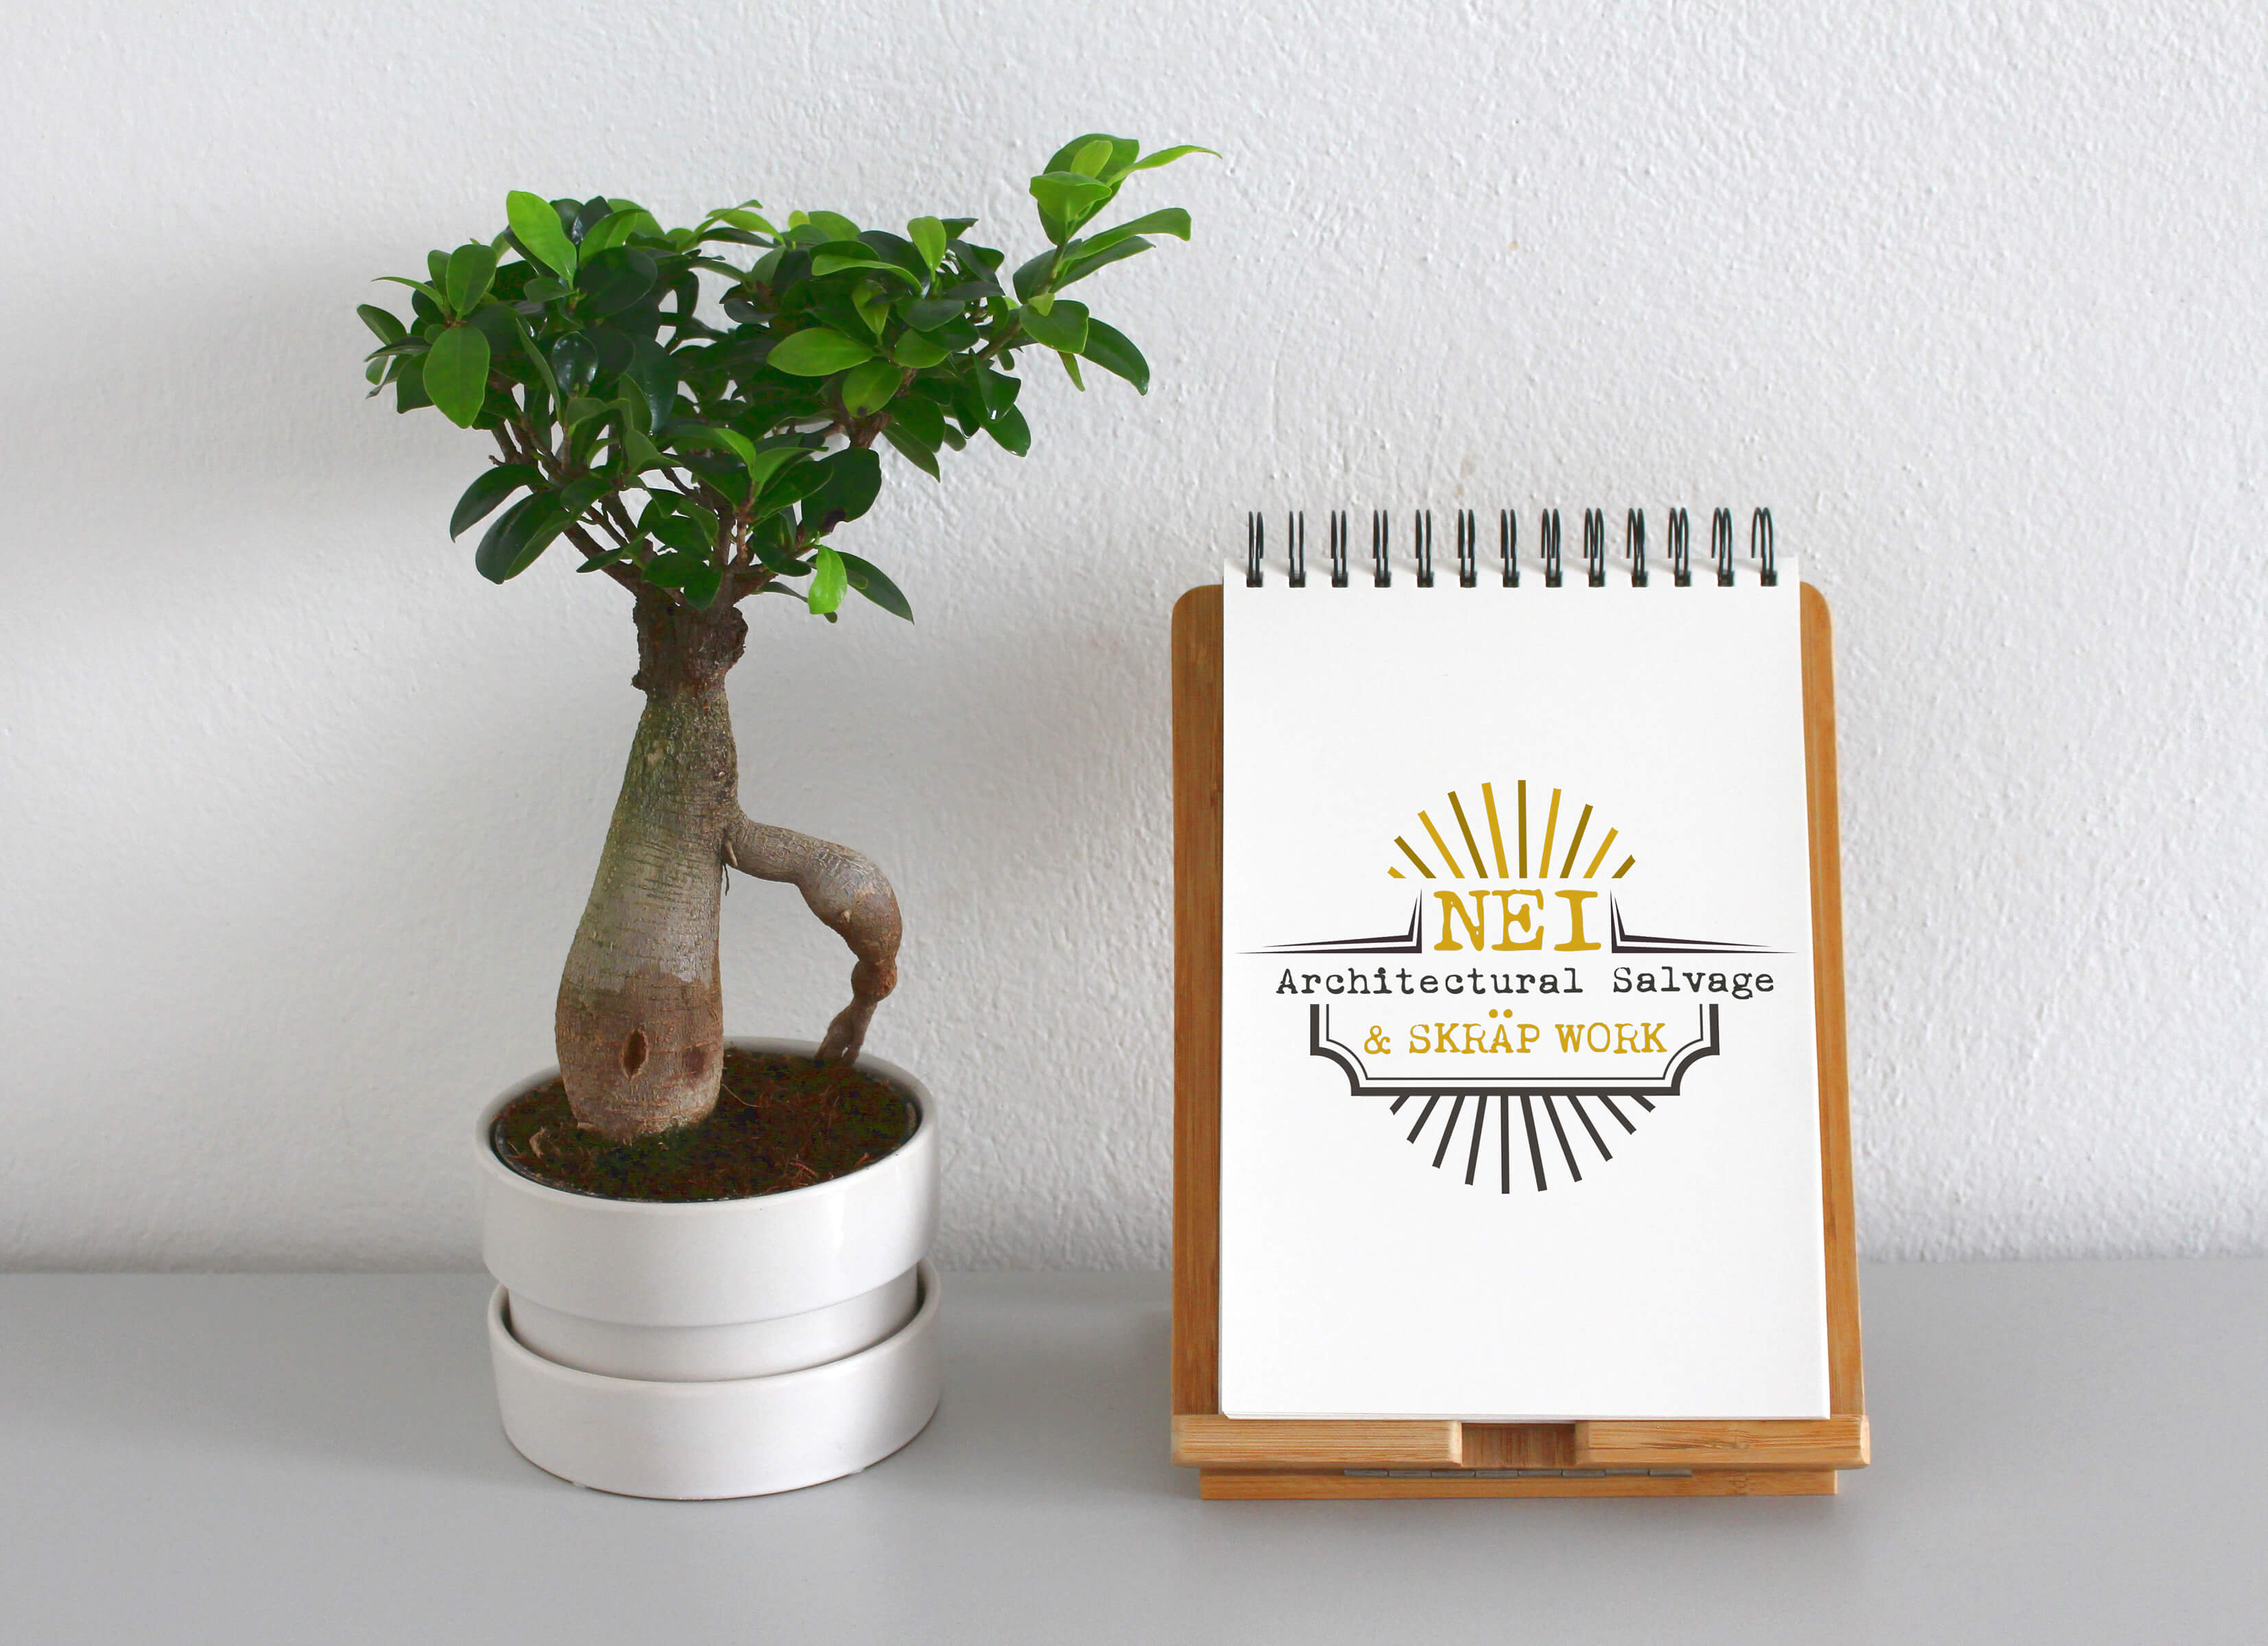 NEIA & Skräp Work logo on notepad with tree